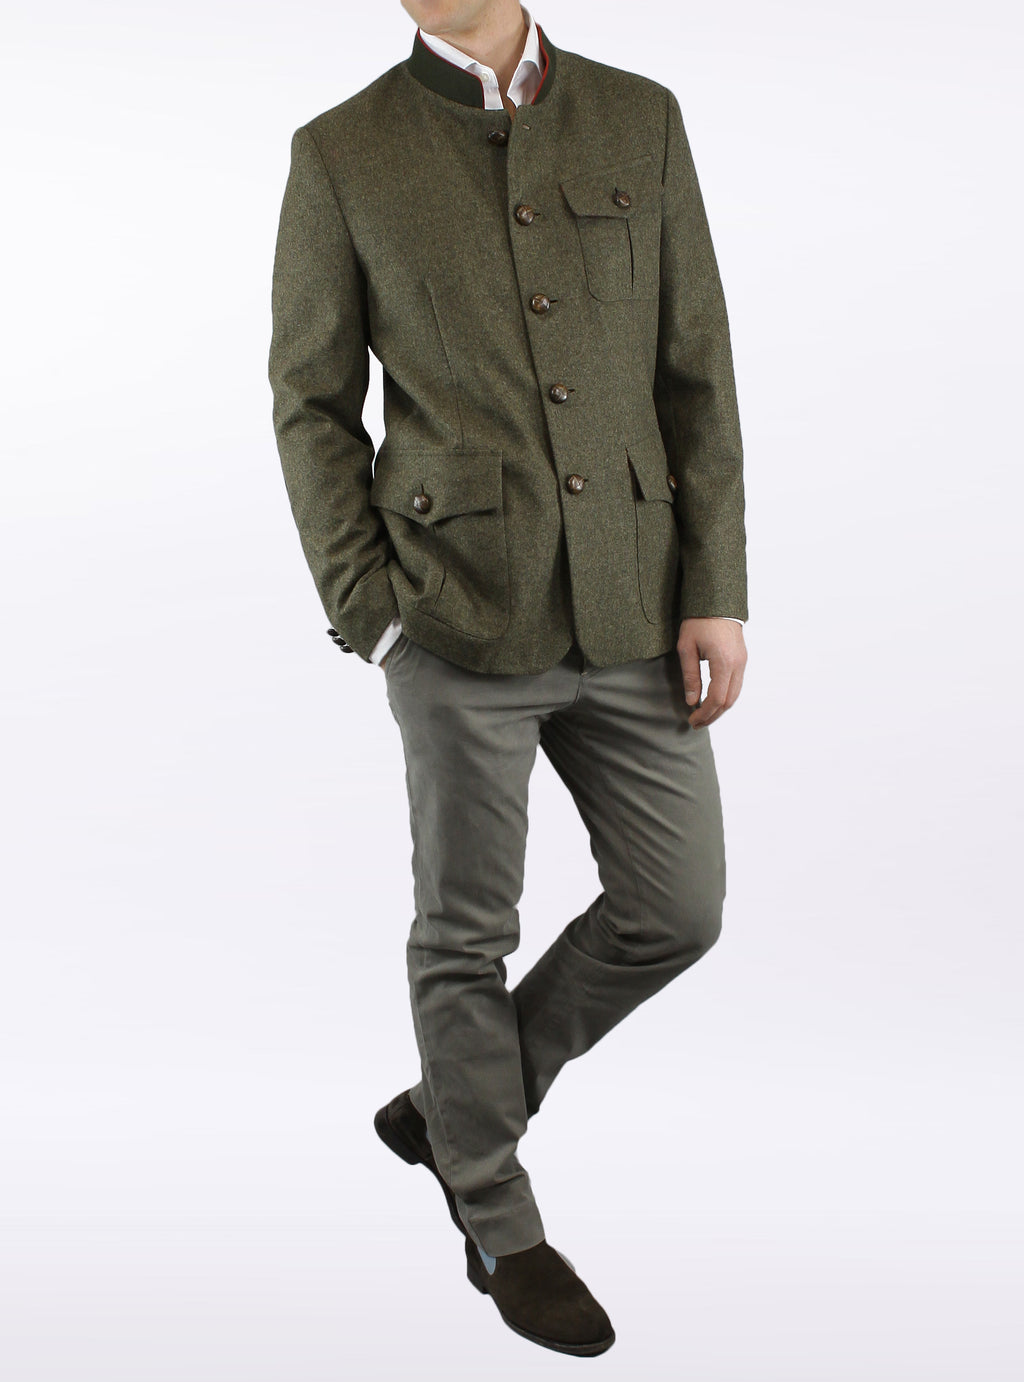 Jacket from Tyrolean loden in green-brown